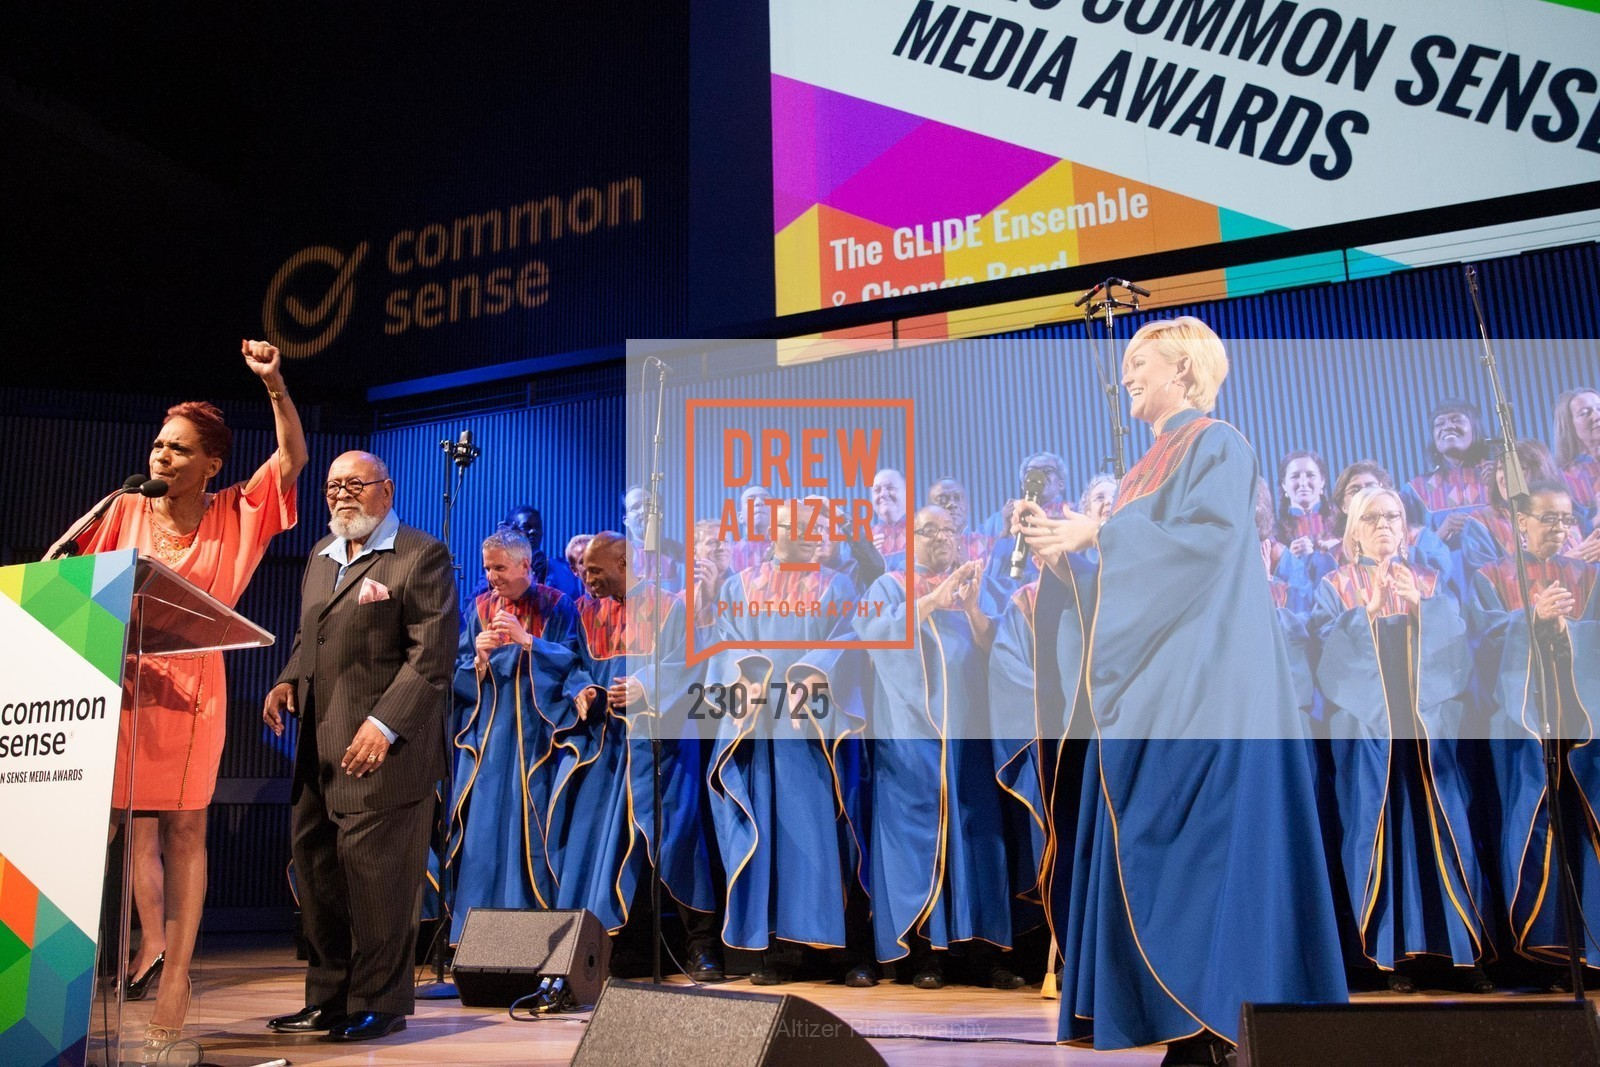 Janice Mirikitani, Reverend Cecil Williams, COMMON SENSE Media Awards 2015, US, May 14th, 2015,Drew Altizer, Drew Altizer Photography, full-service agency, private events, San Francisco photographer, photographer california